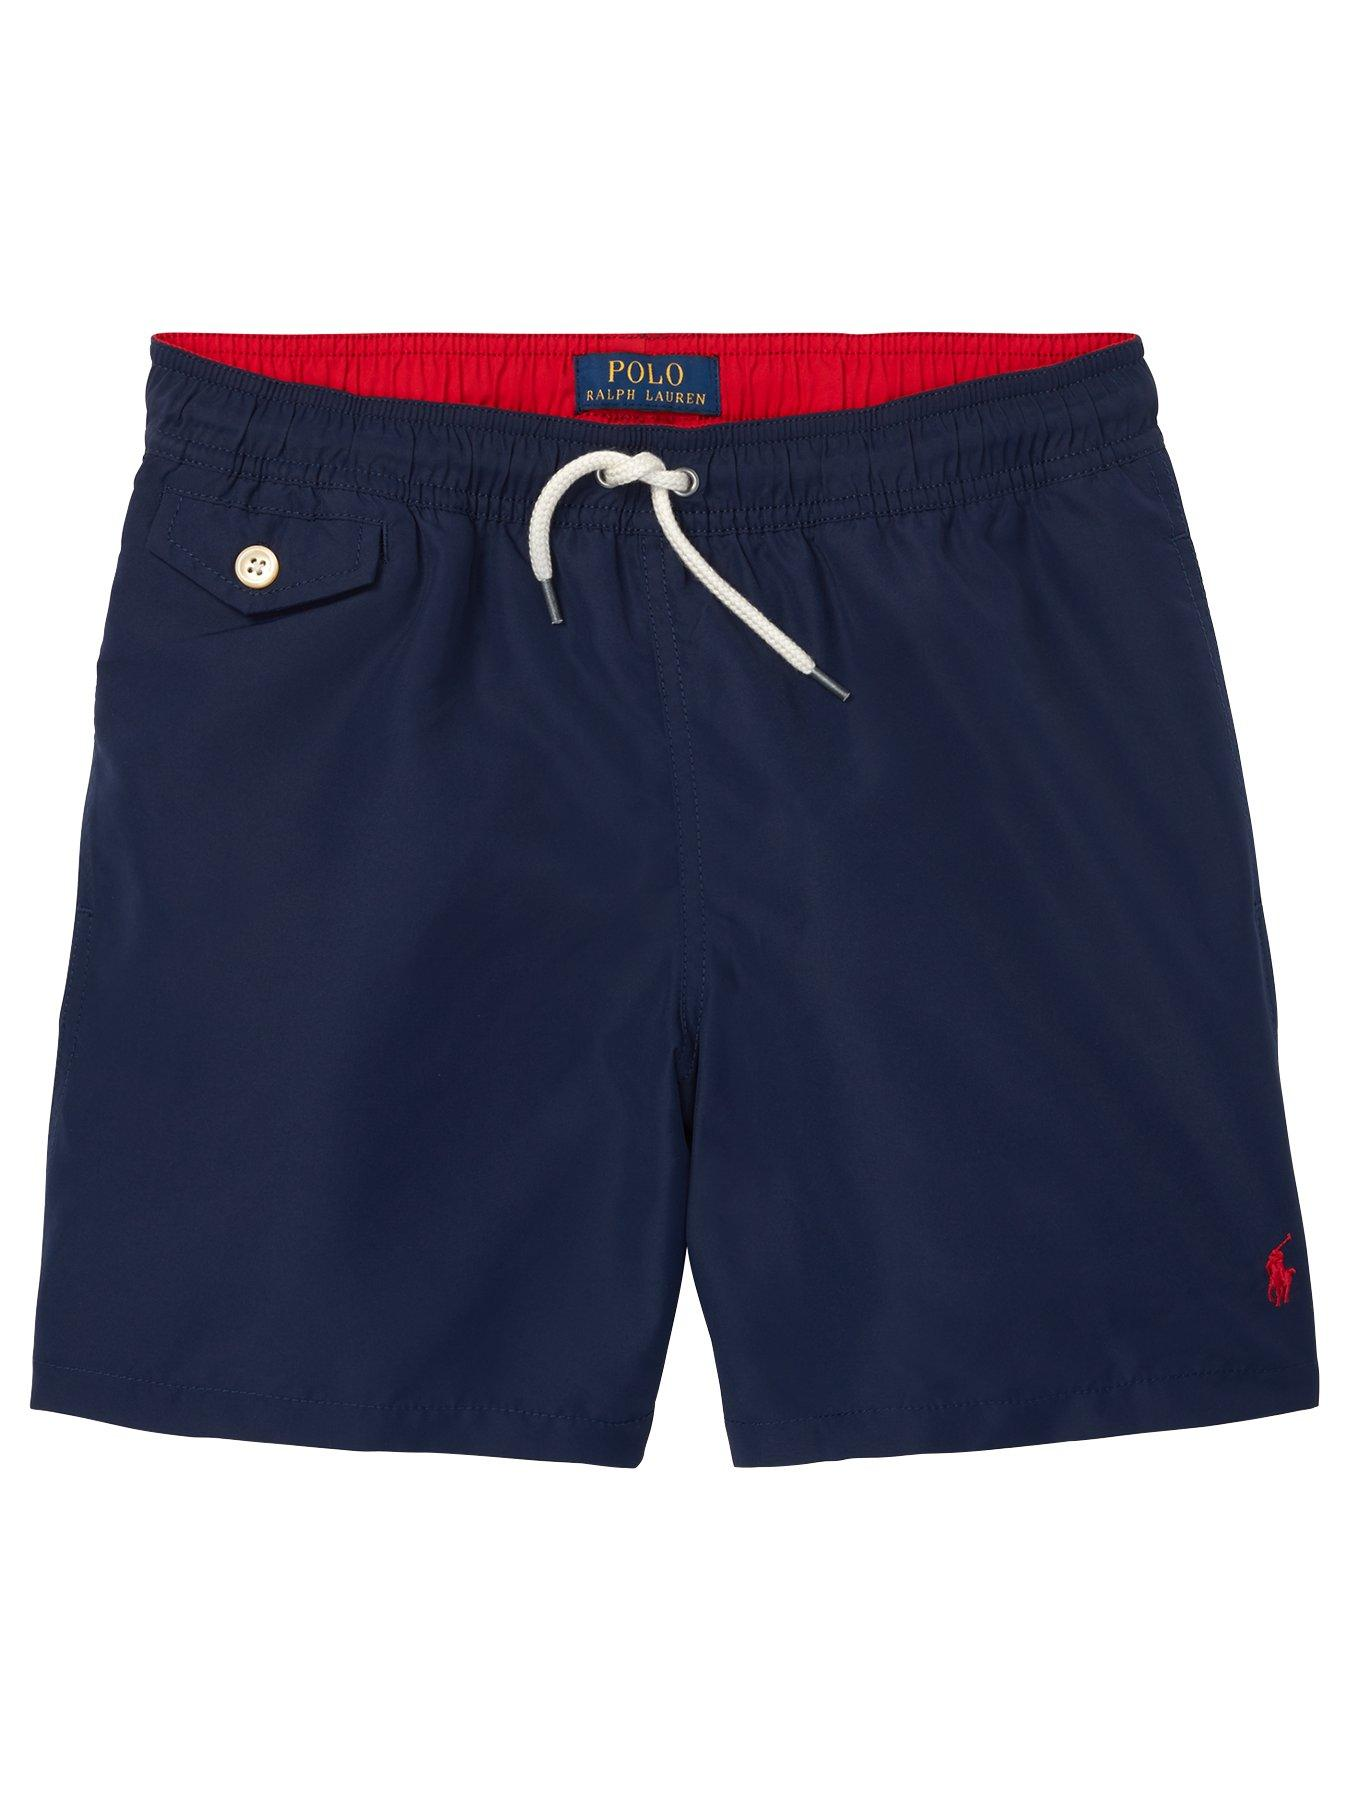 Boys Blue Trousers 18 Months Ralph Lauren Discounts Sale Baby & Toddler Clothing Clothing, Shoes & Accessories